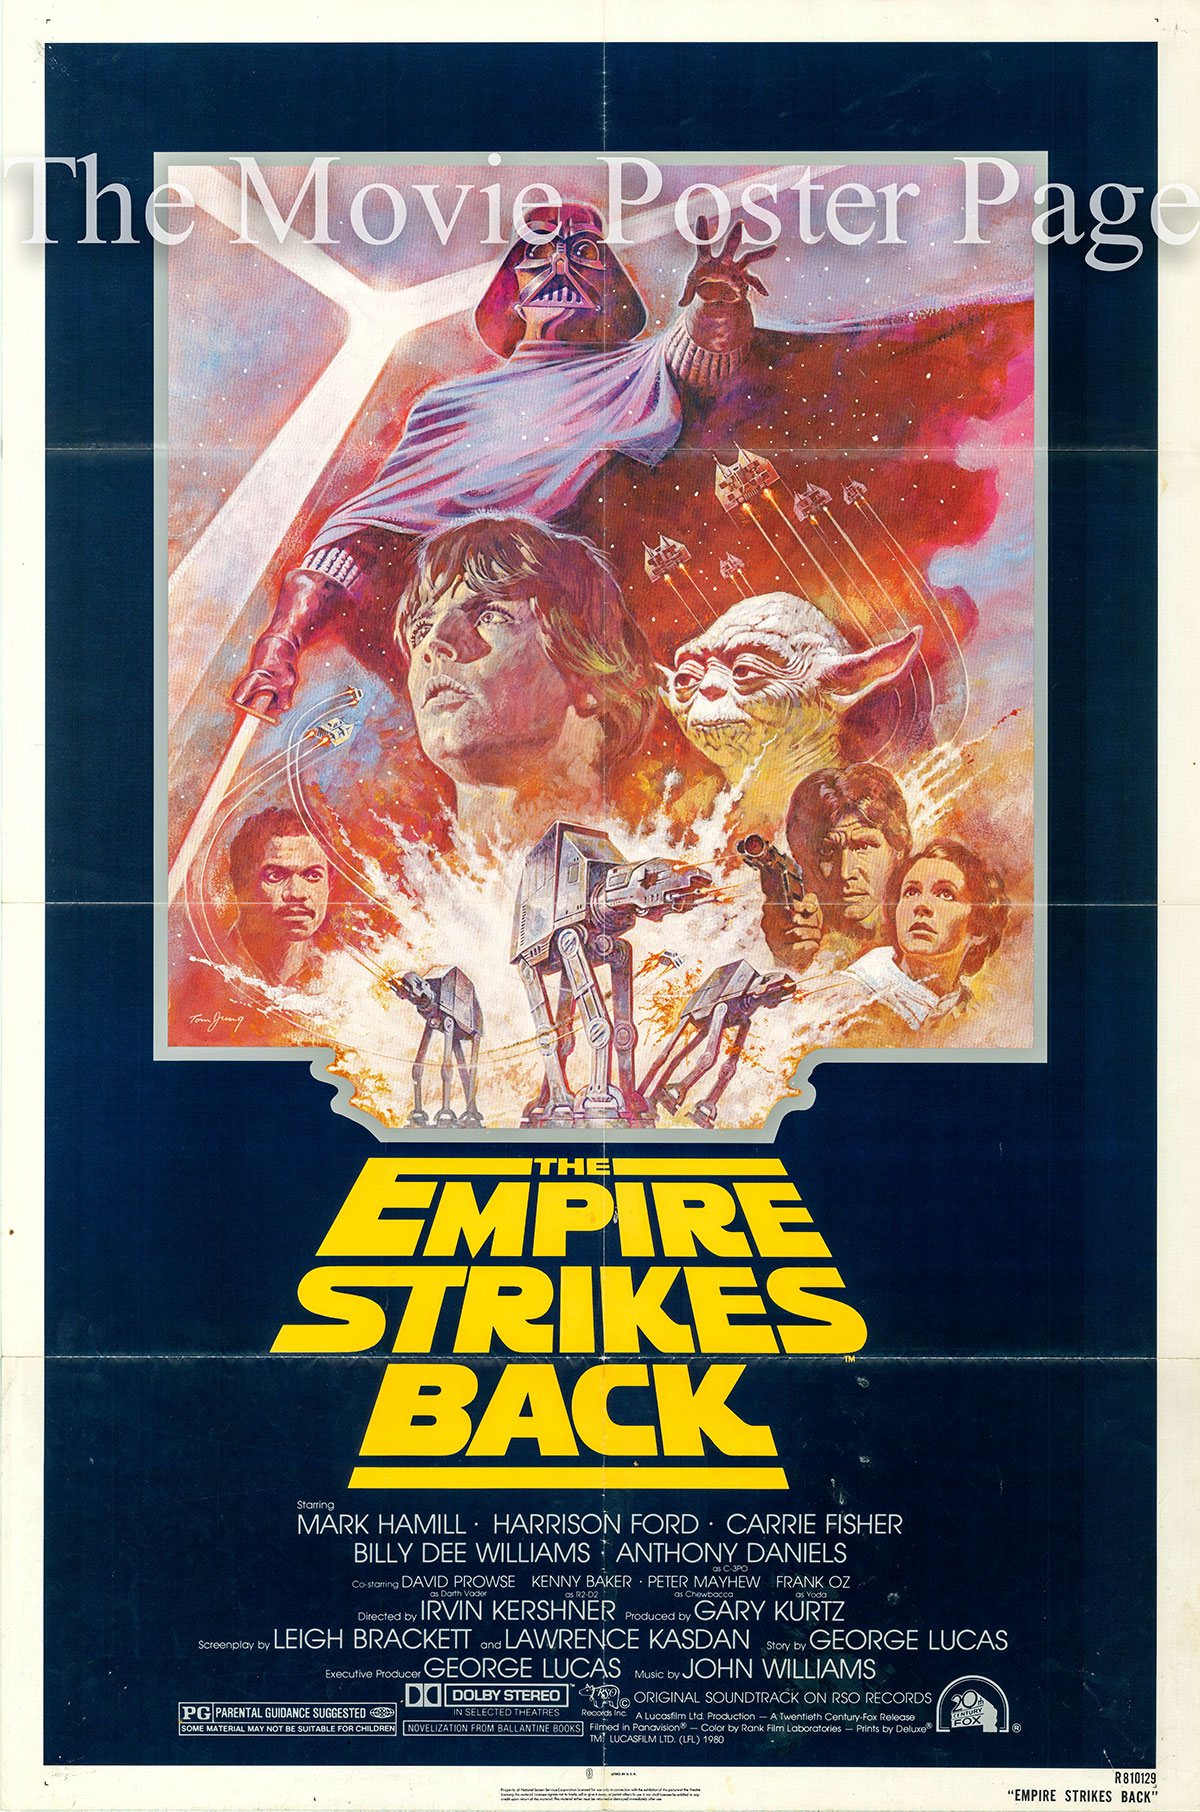 Pictured is a 1981 US rerelease poster for the 1980 Irwin Kershner film The Empire Strikes Back starring Mark Hamill as Luke Skywalker.